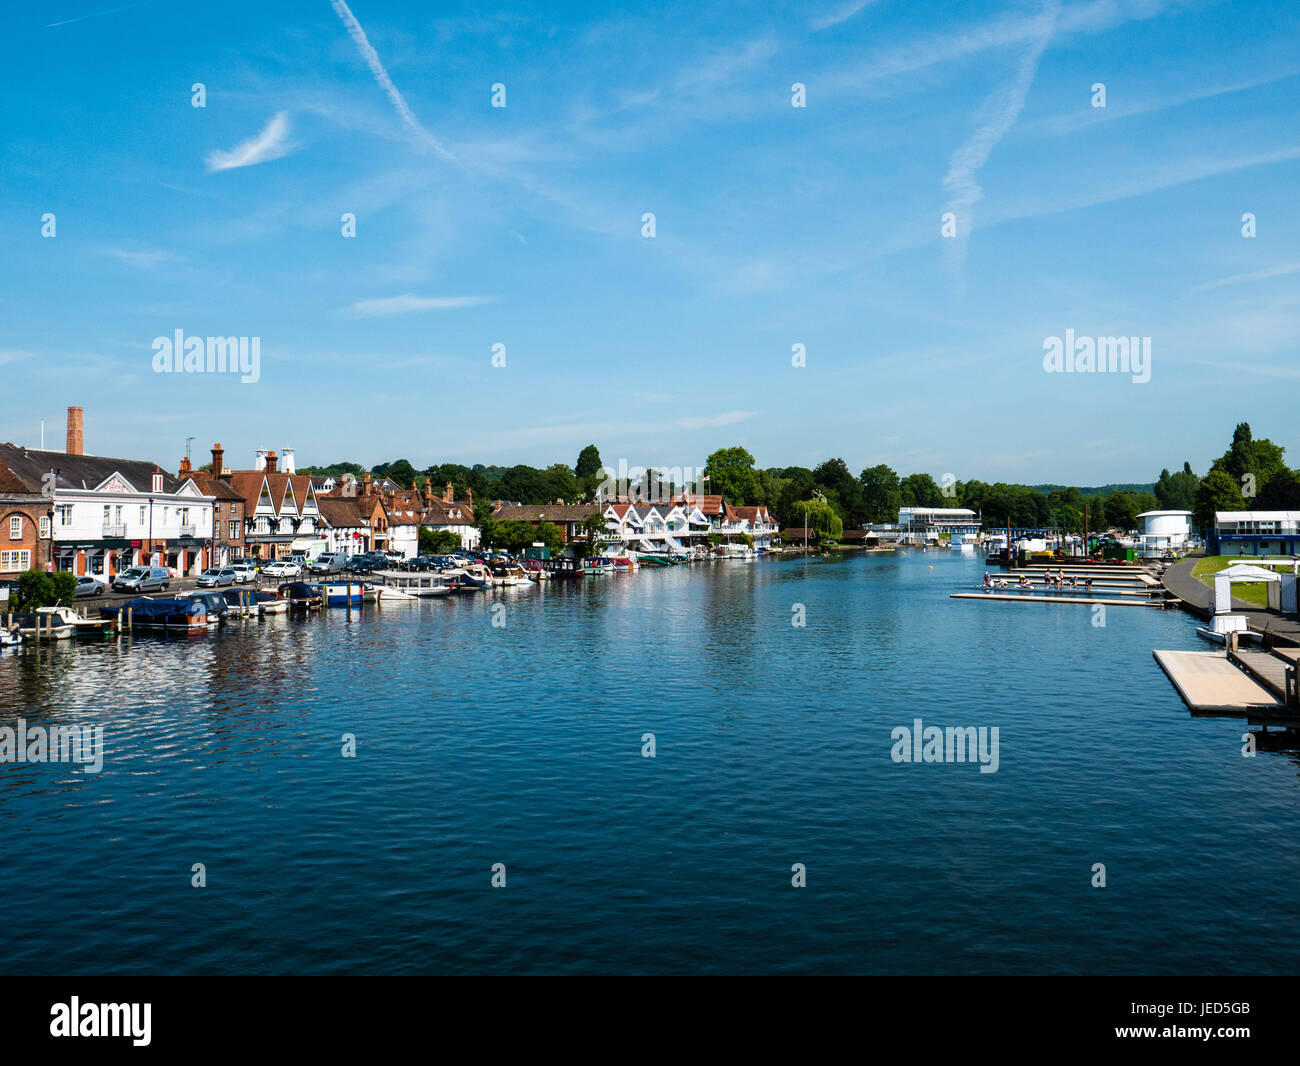 View of River Thames from Henley Bridge, Henley-on-Thames, Oxfordshire, England - Stock Image